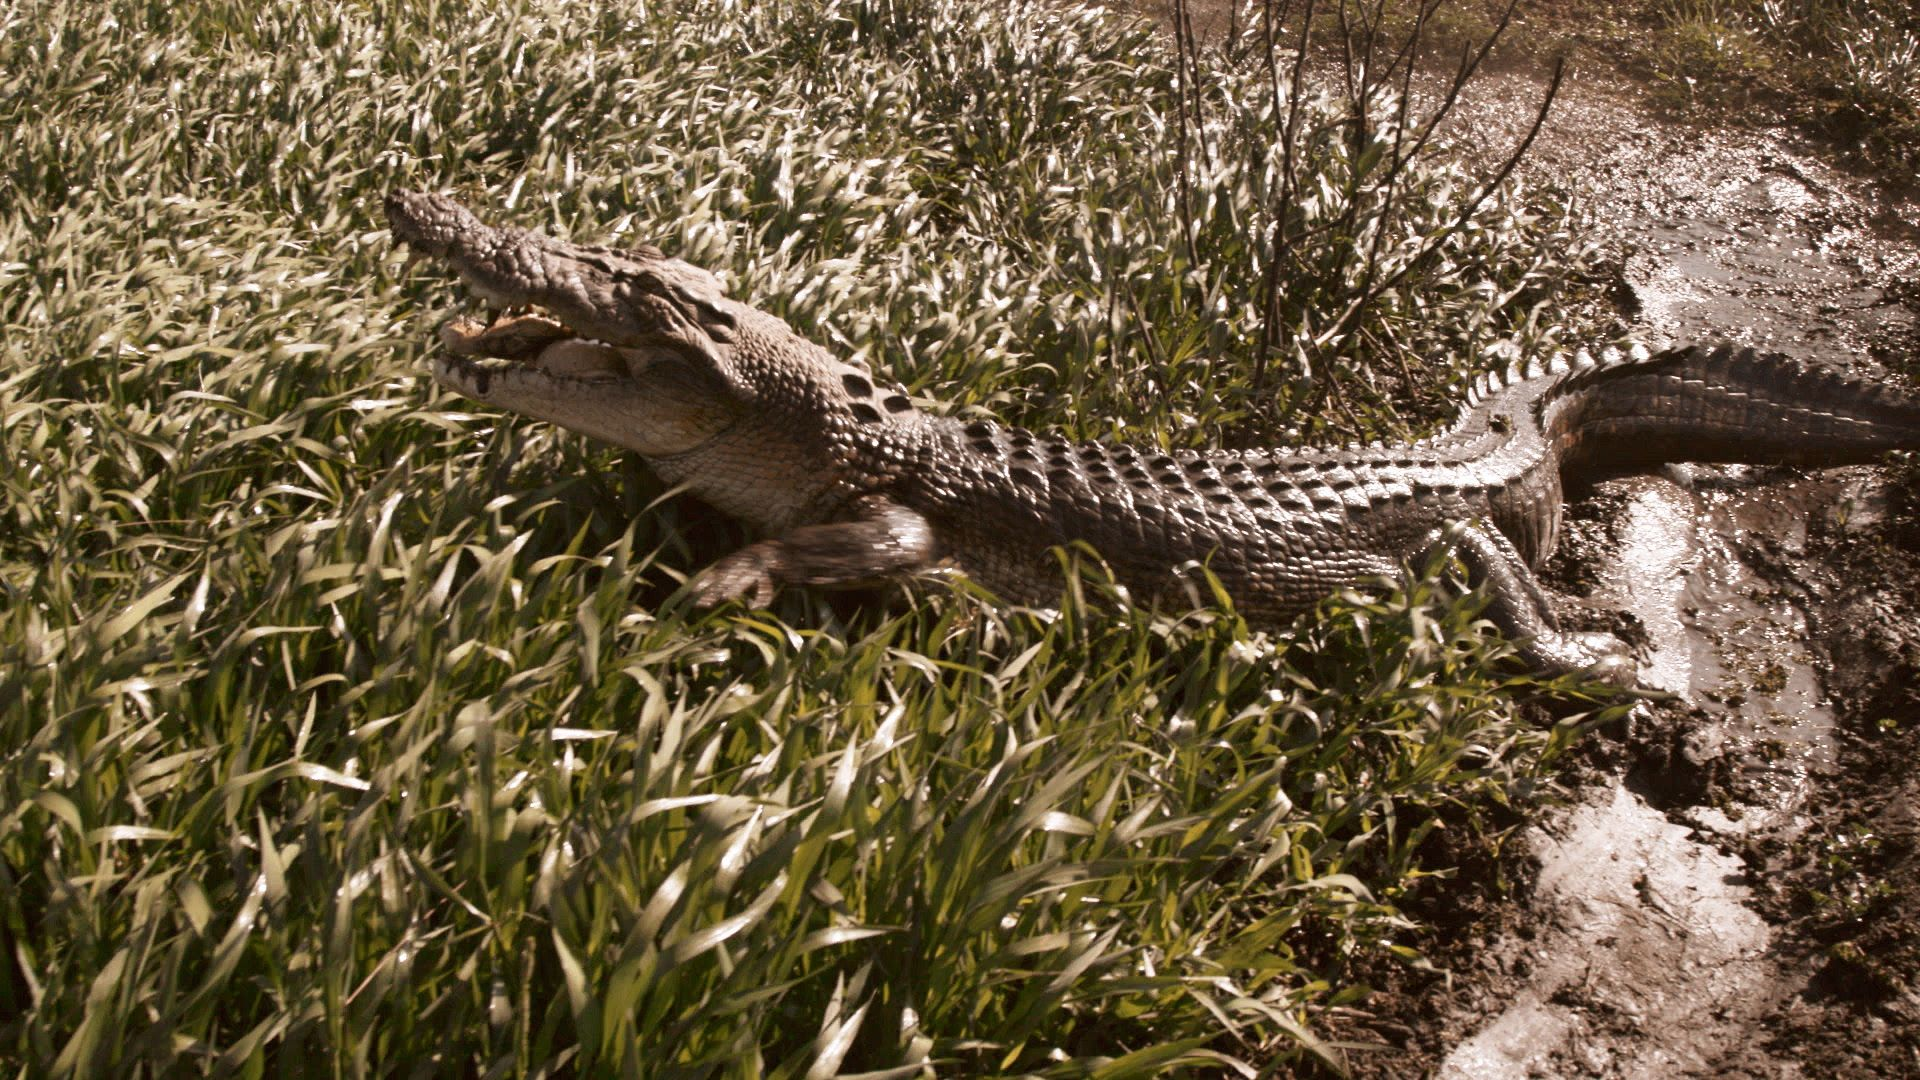 Crocodile in grass, missing half it's bottom jaw. This is from Monster Croc Wangler [Photo of the day - October 2021]